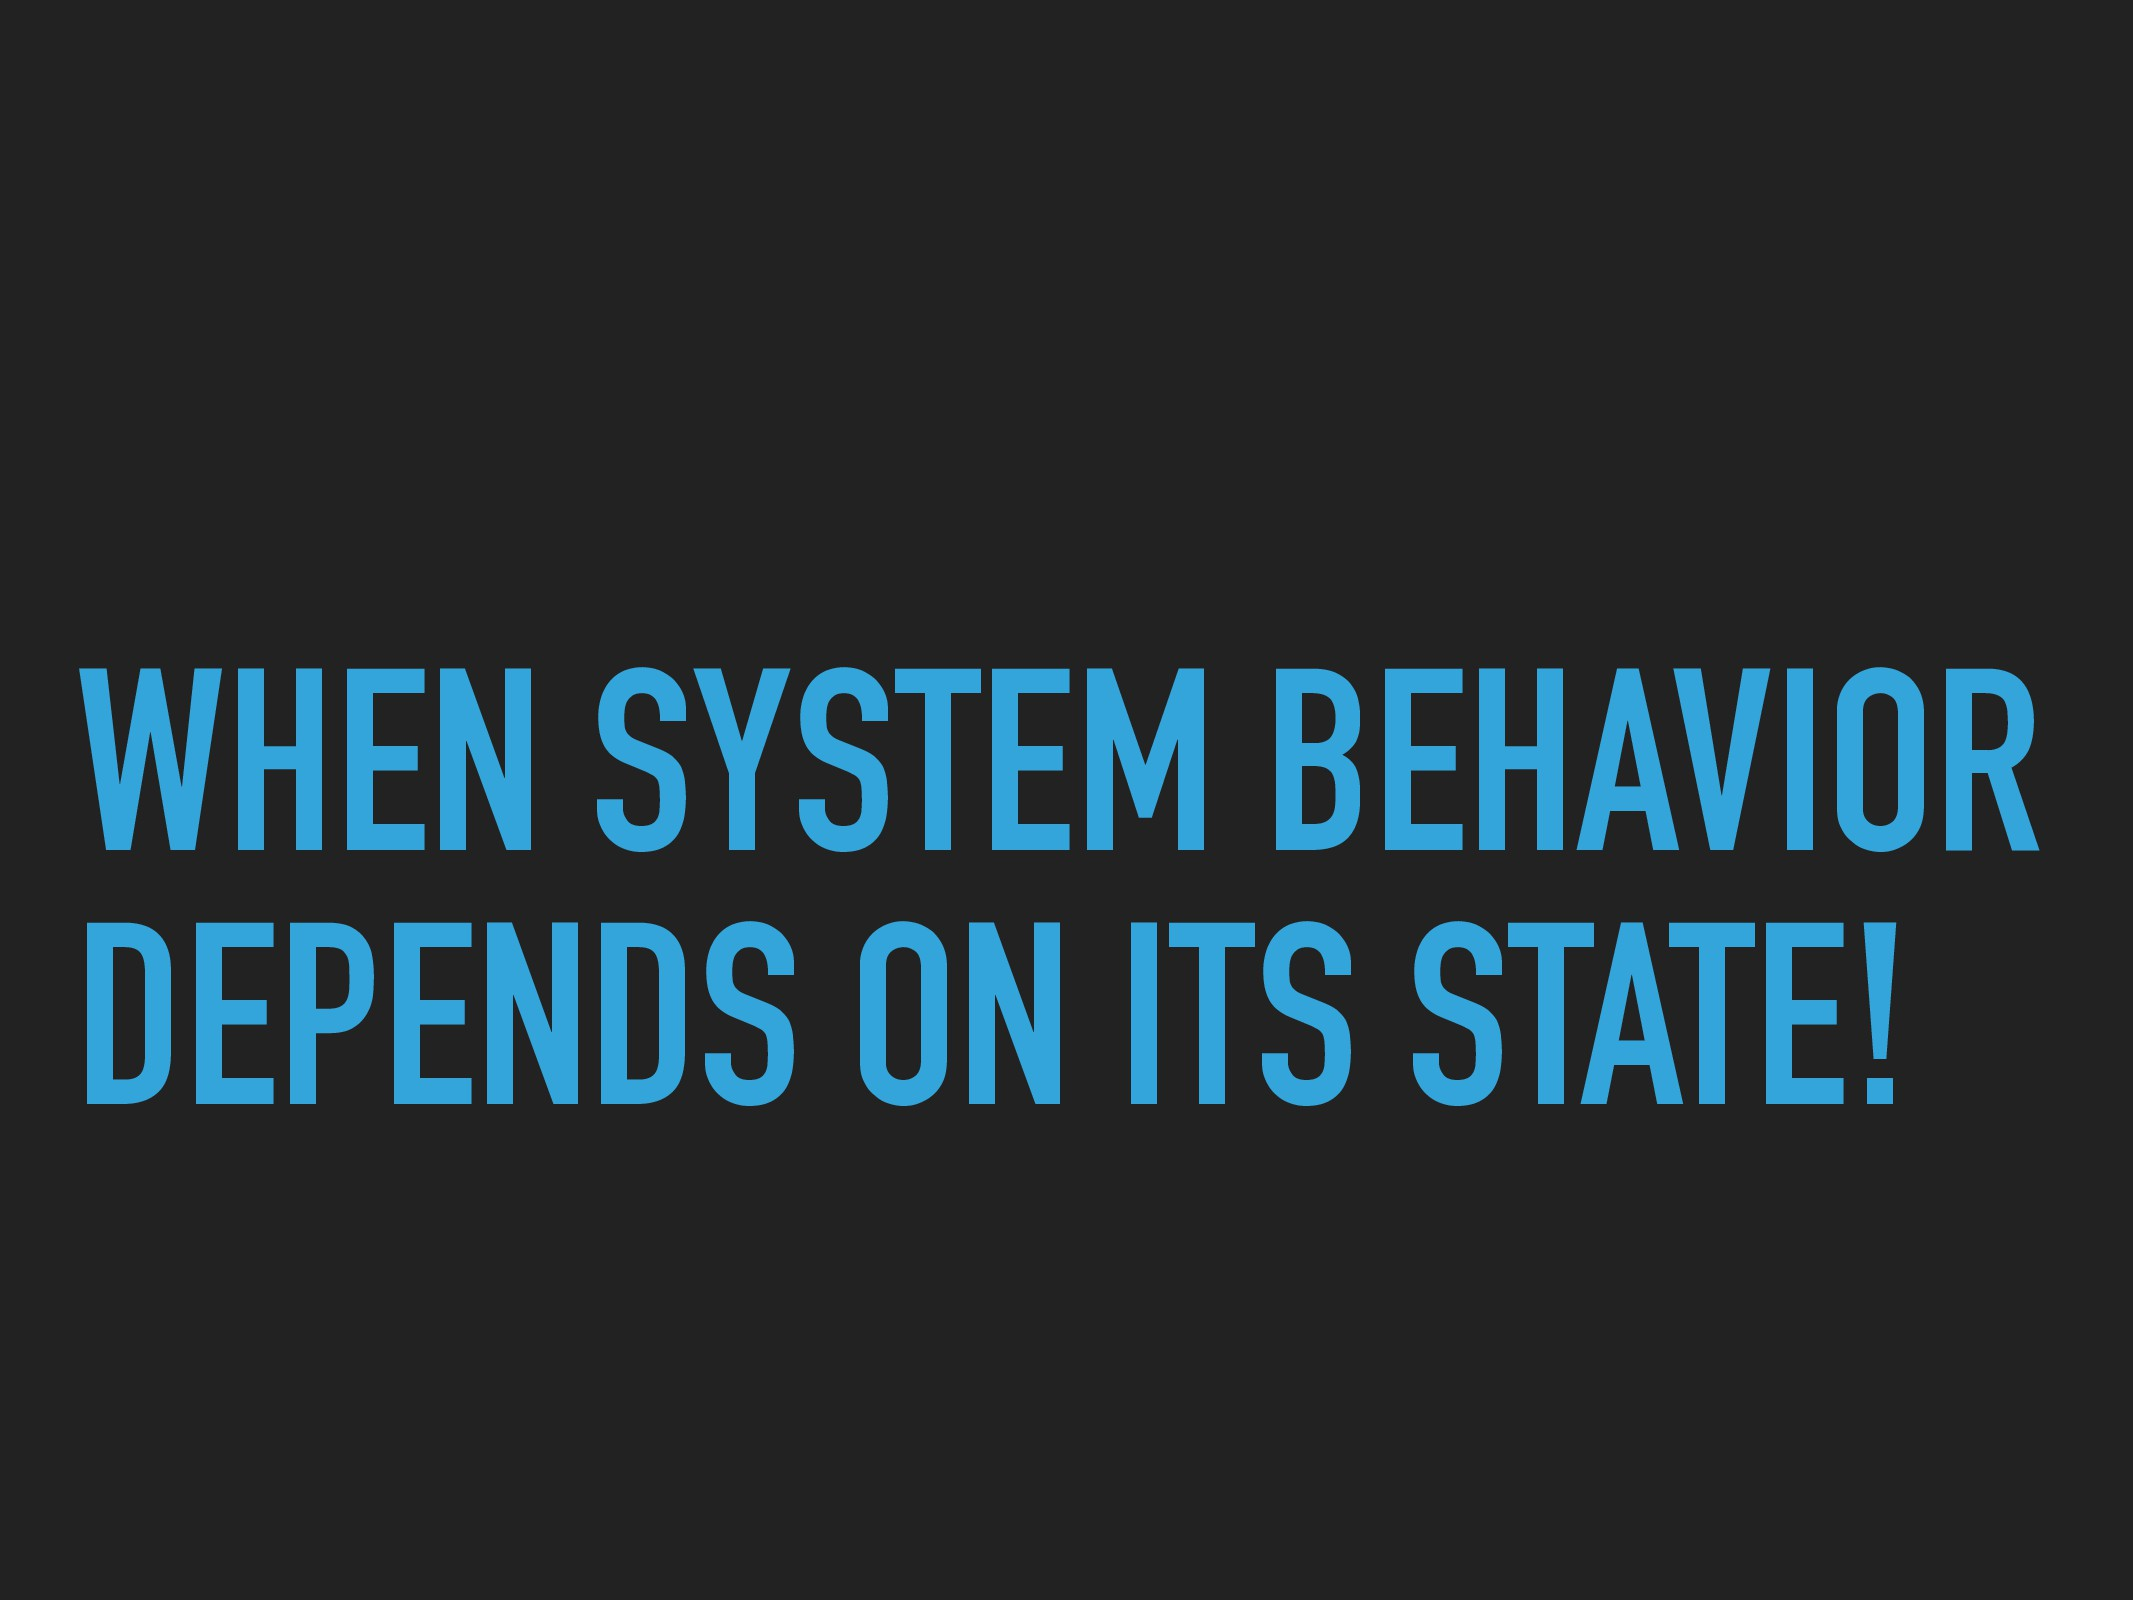 WHEN SYSTEM BEHAVIOR DEPENDS ON ITS STATE!